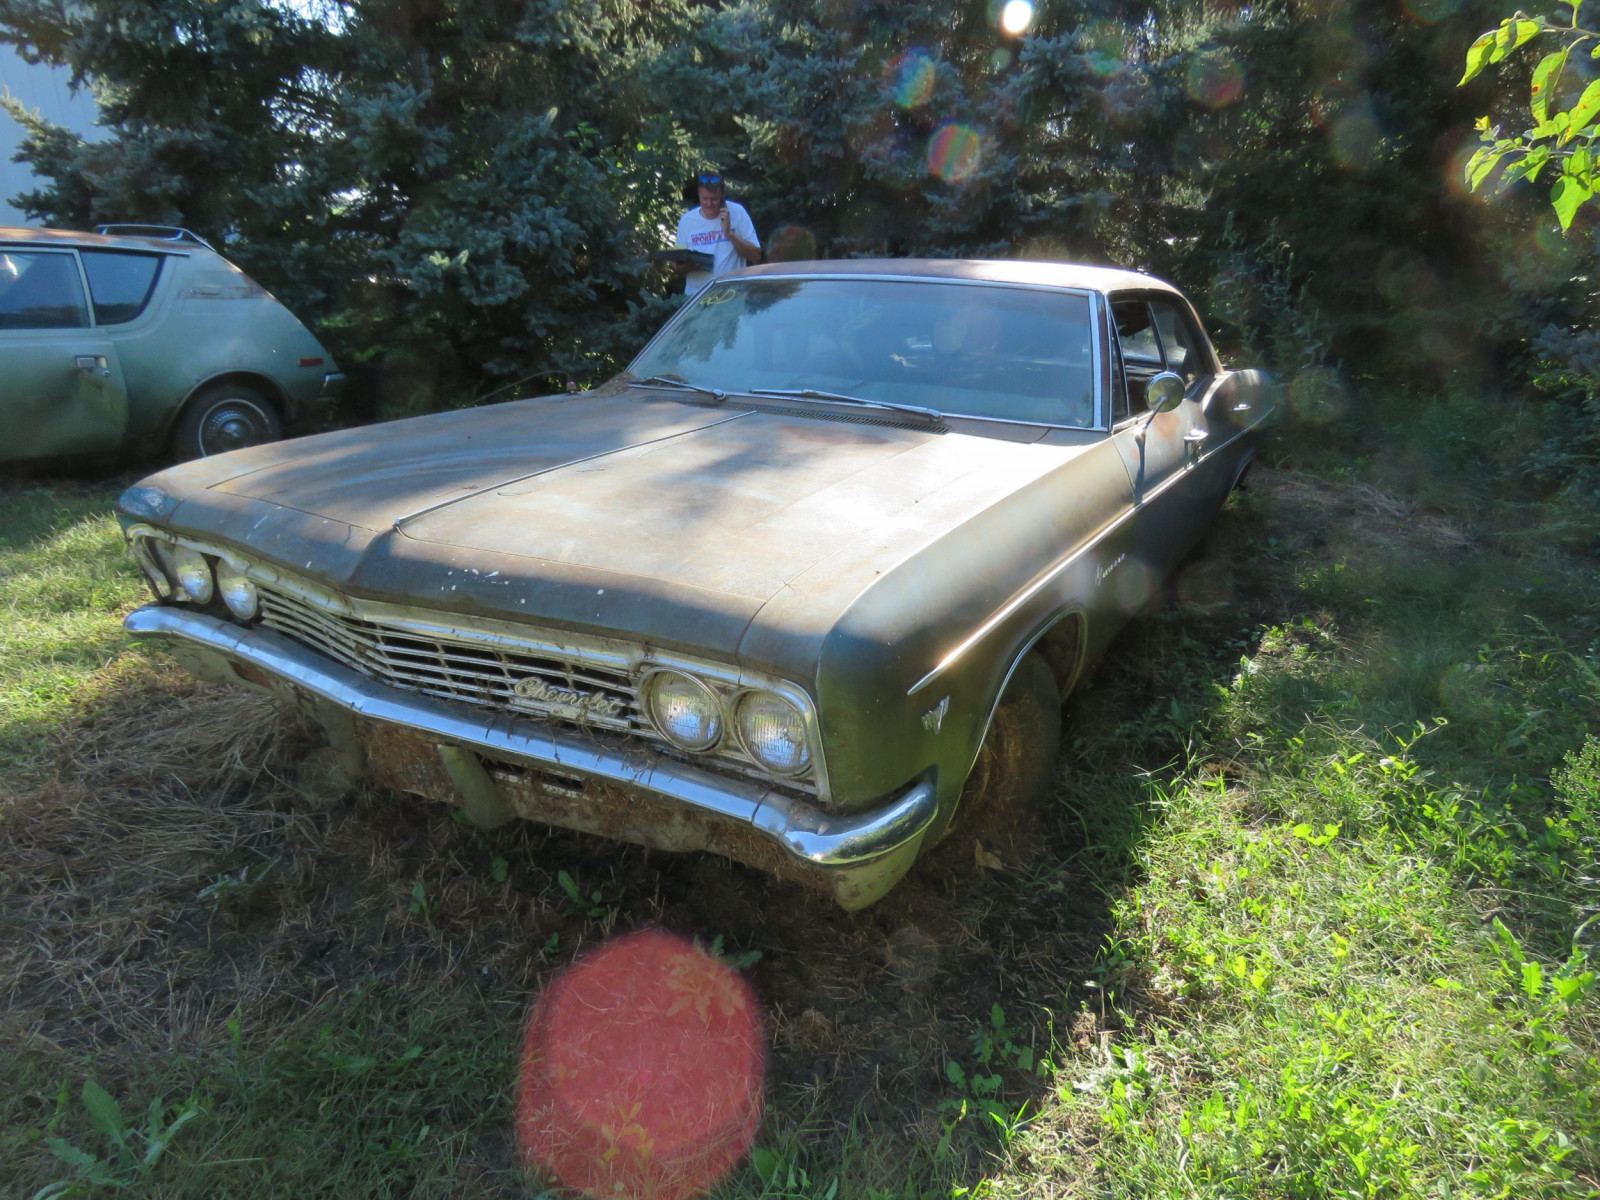 1966 Chevrolet Impala 4dr HT for Project or Parts - Image 2